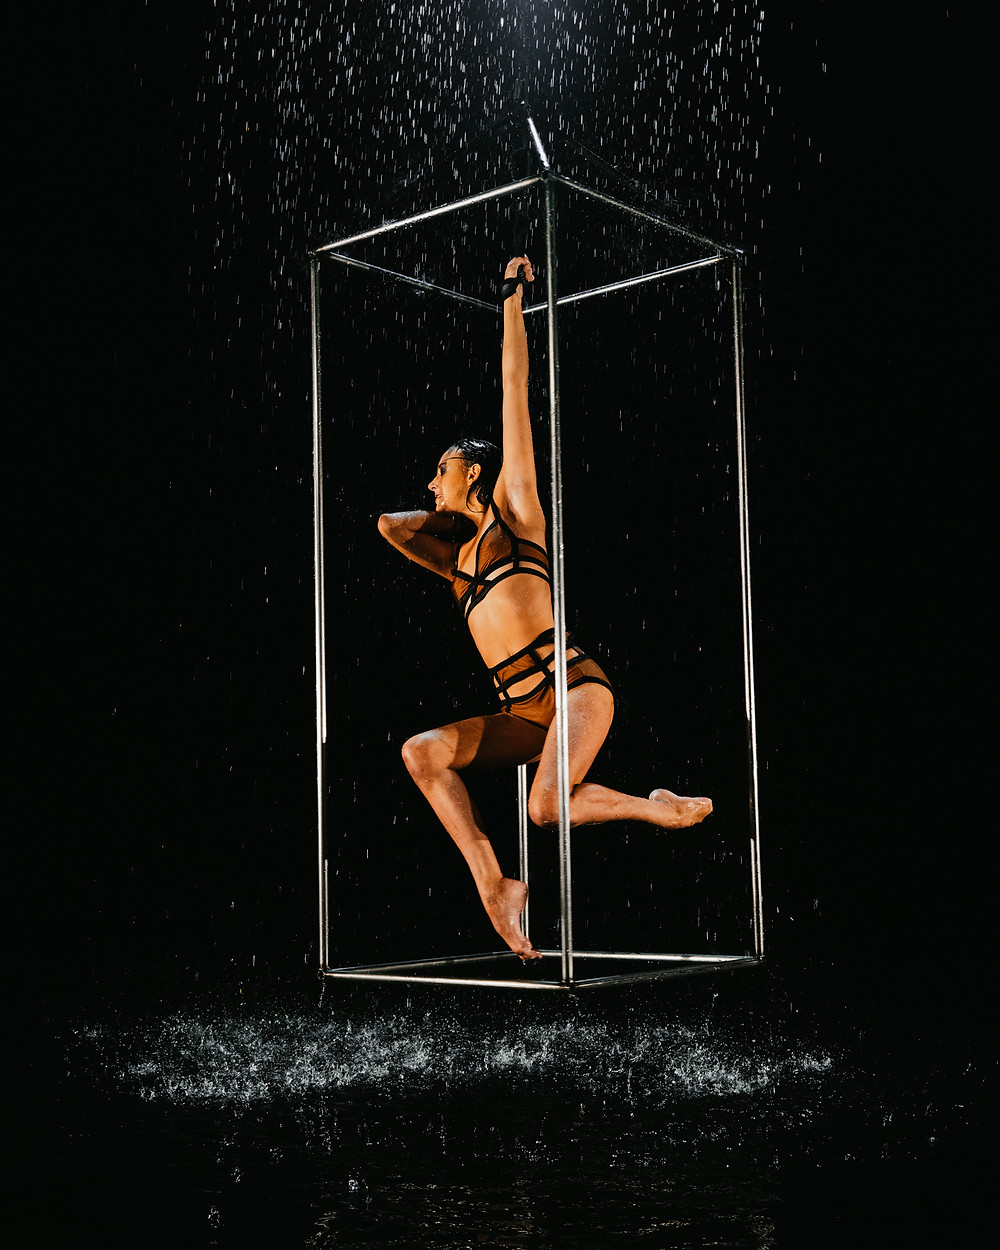 cirque du soliel performed hangs upside down doing the splits captured by Las Vegas videographer hayway films in the rain